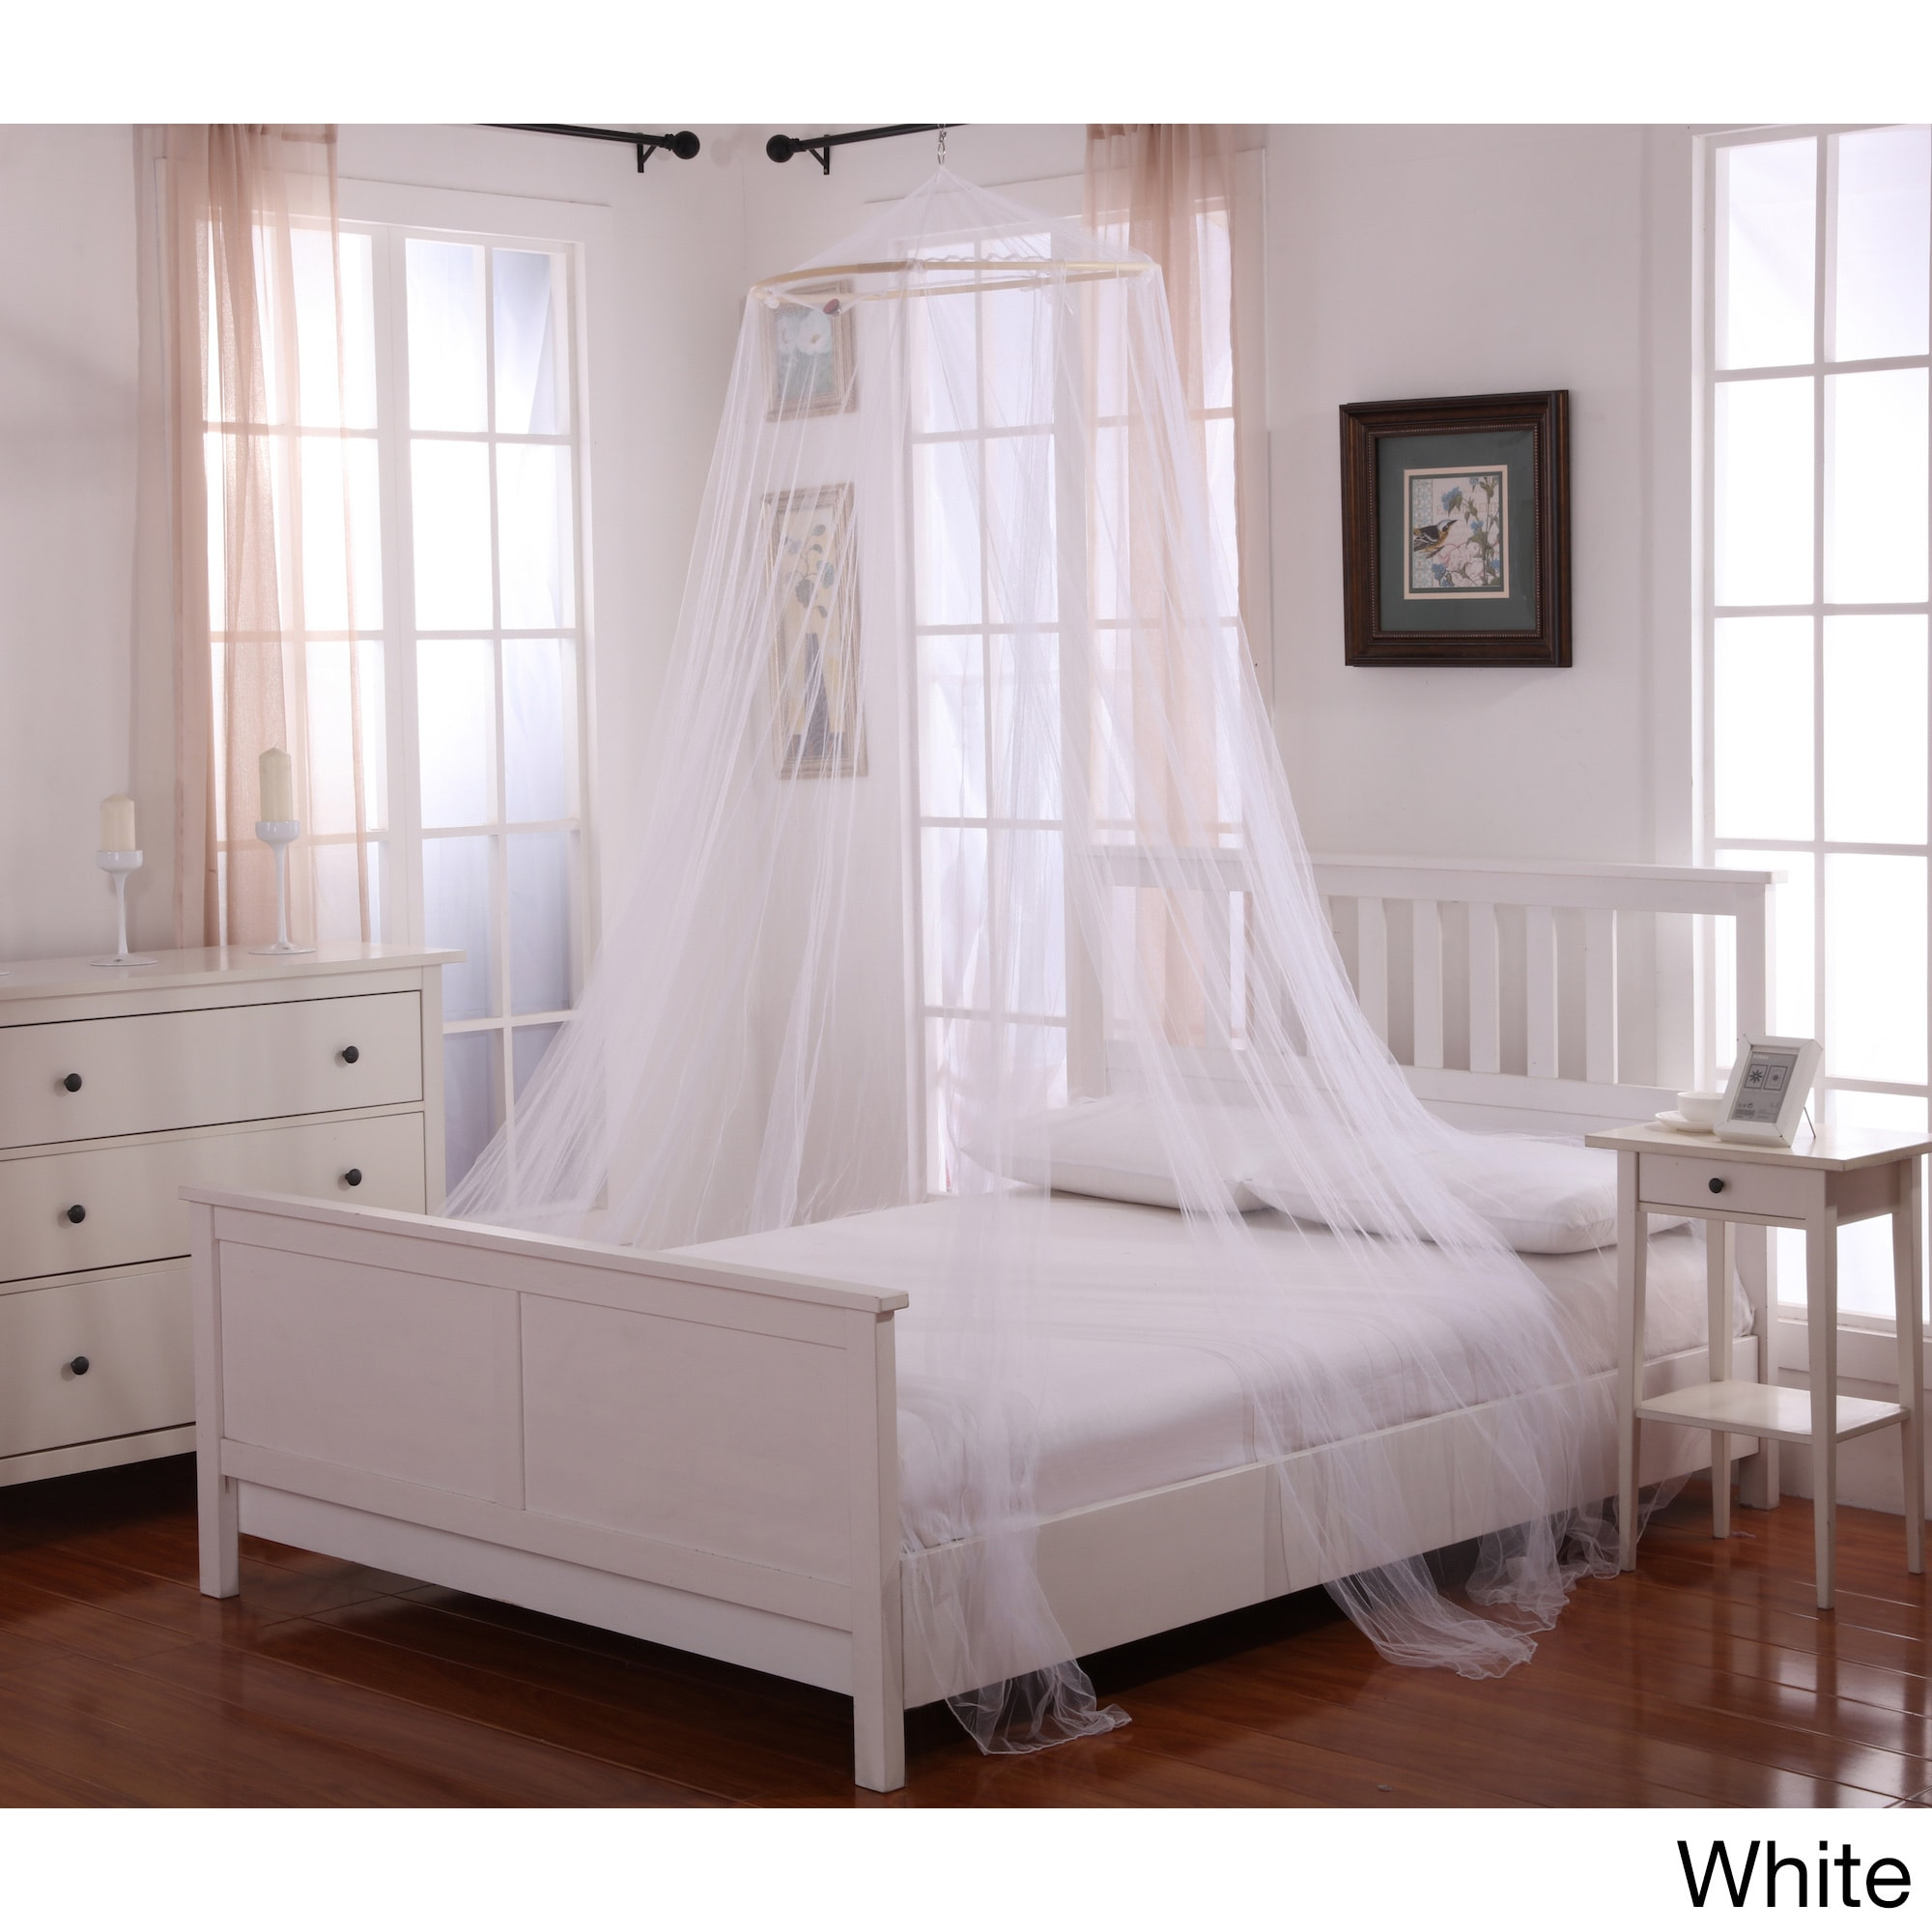 - Shop Oasis Sheer Moqsuito Net Round Hoop Bed Canopy - On Sale